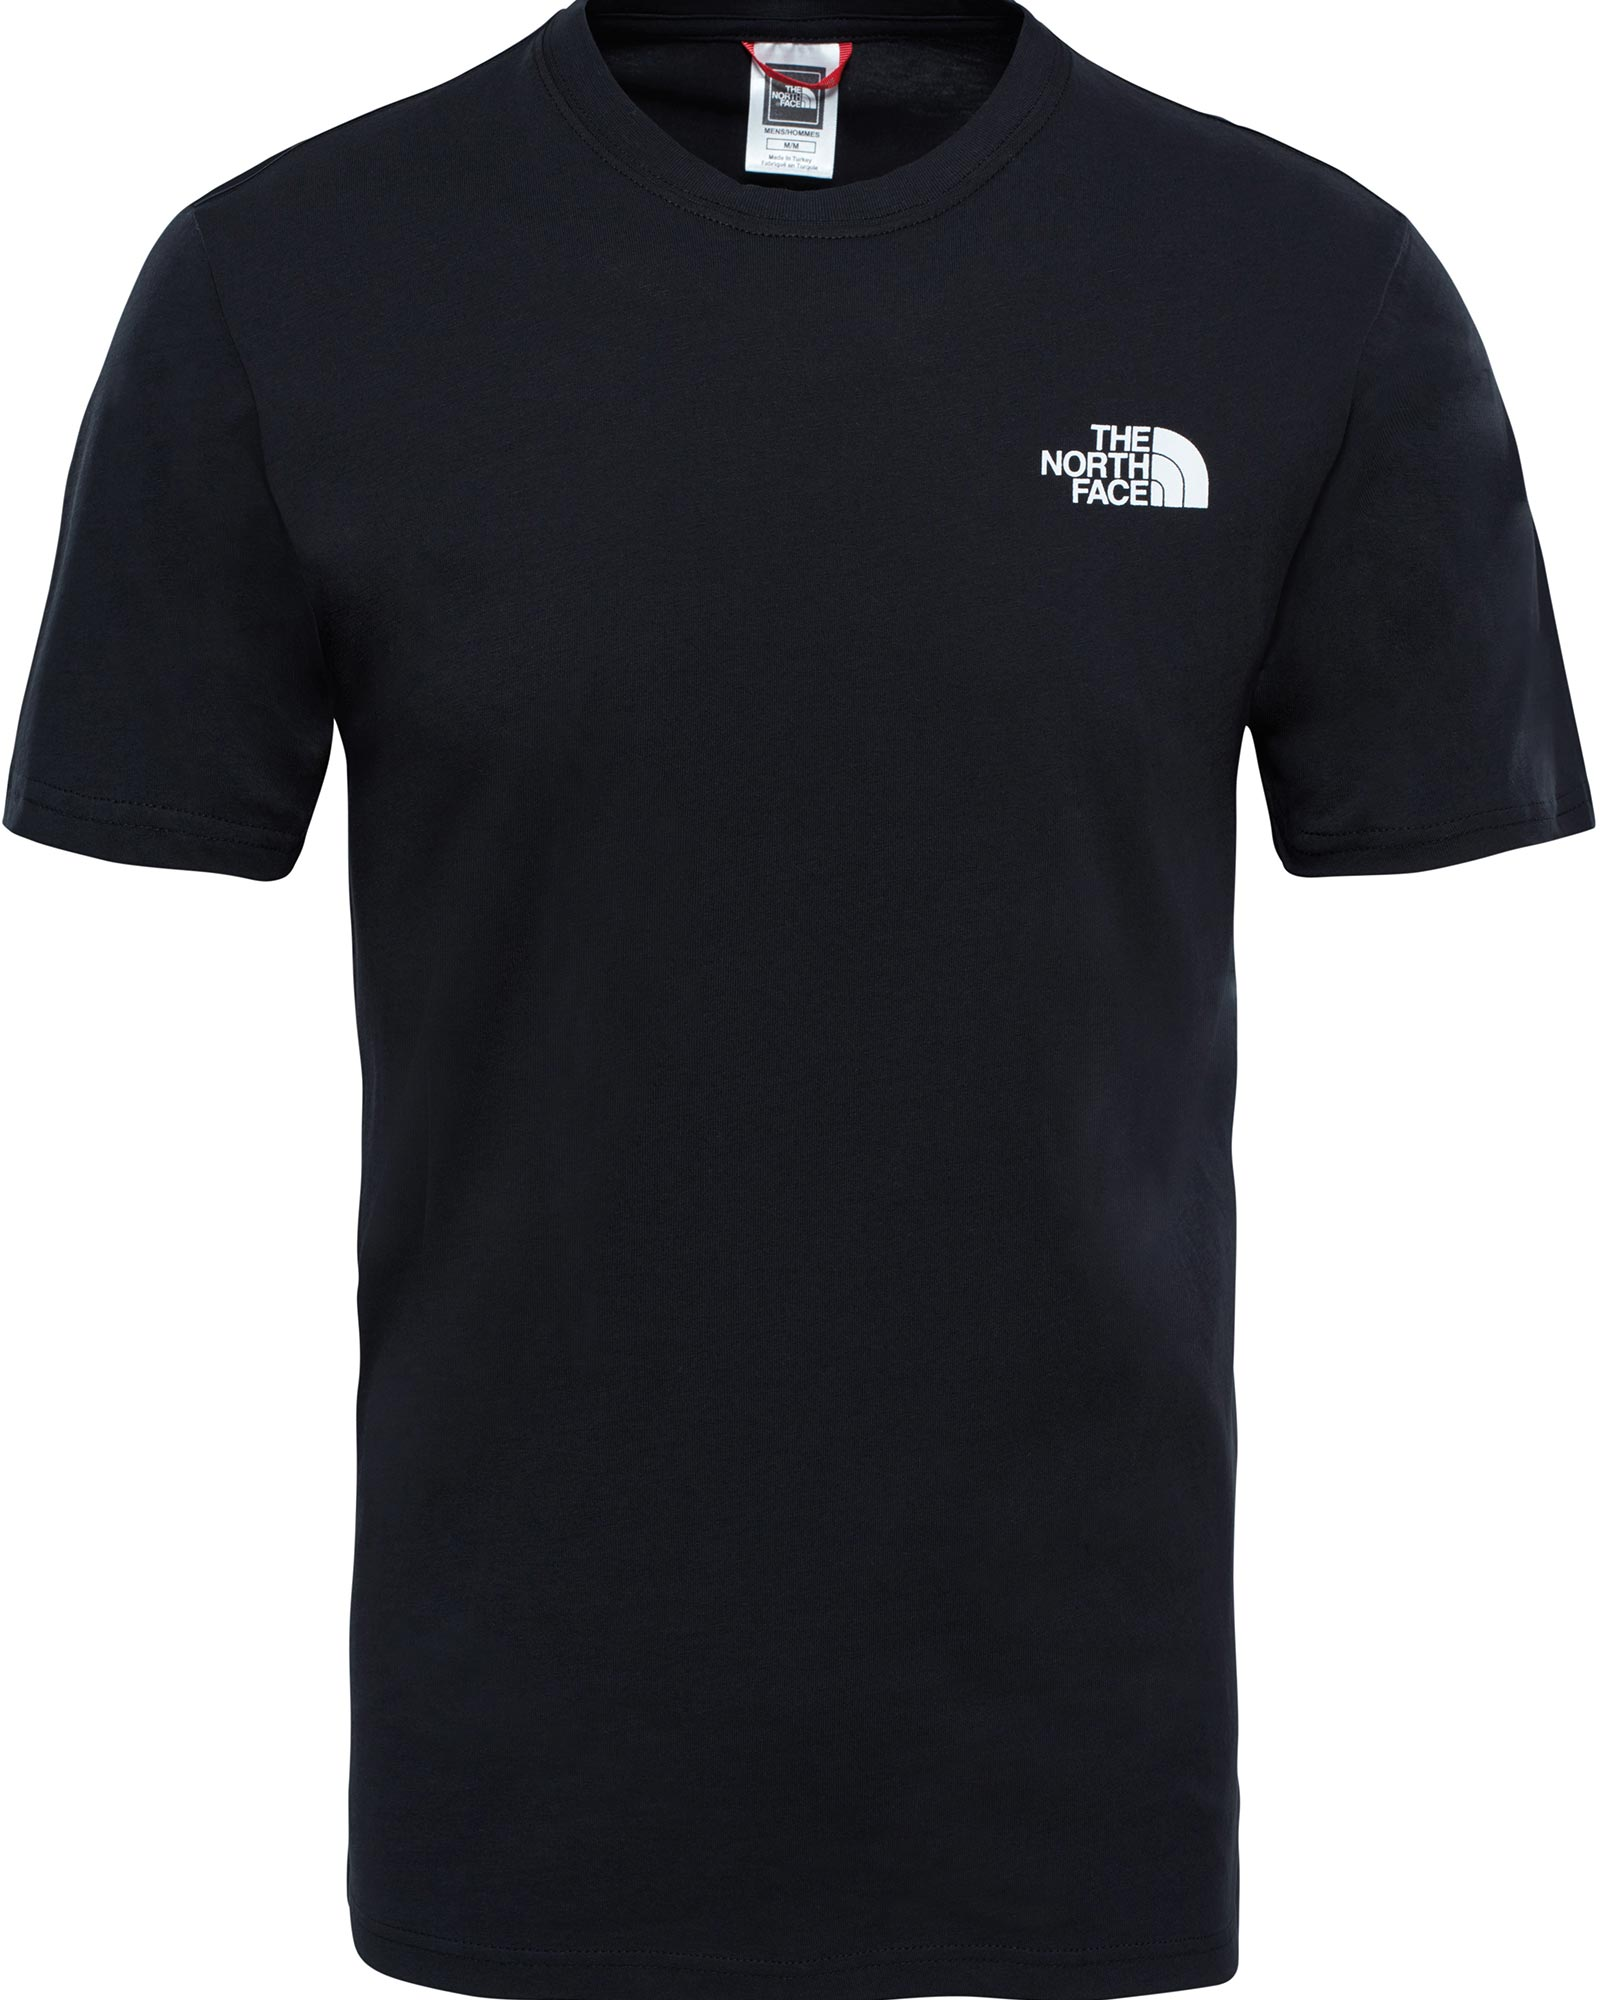 The North Face Men's S/S Red Box T-Shirt 0